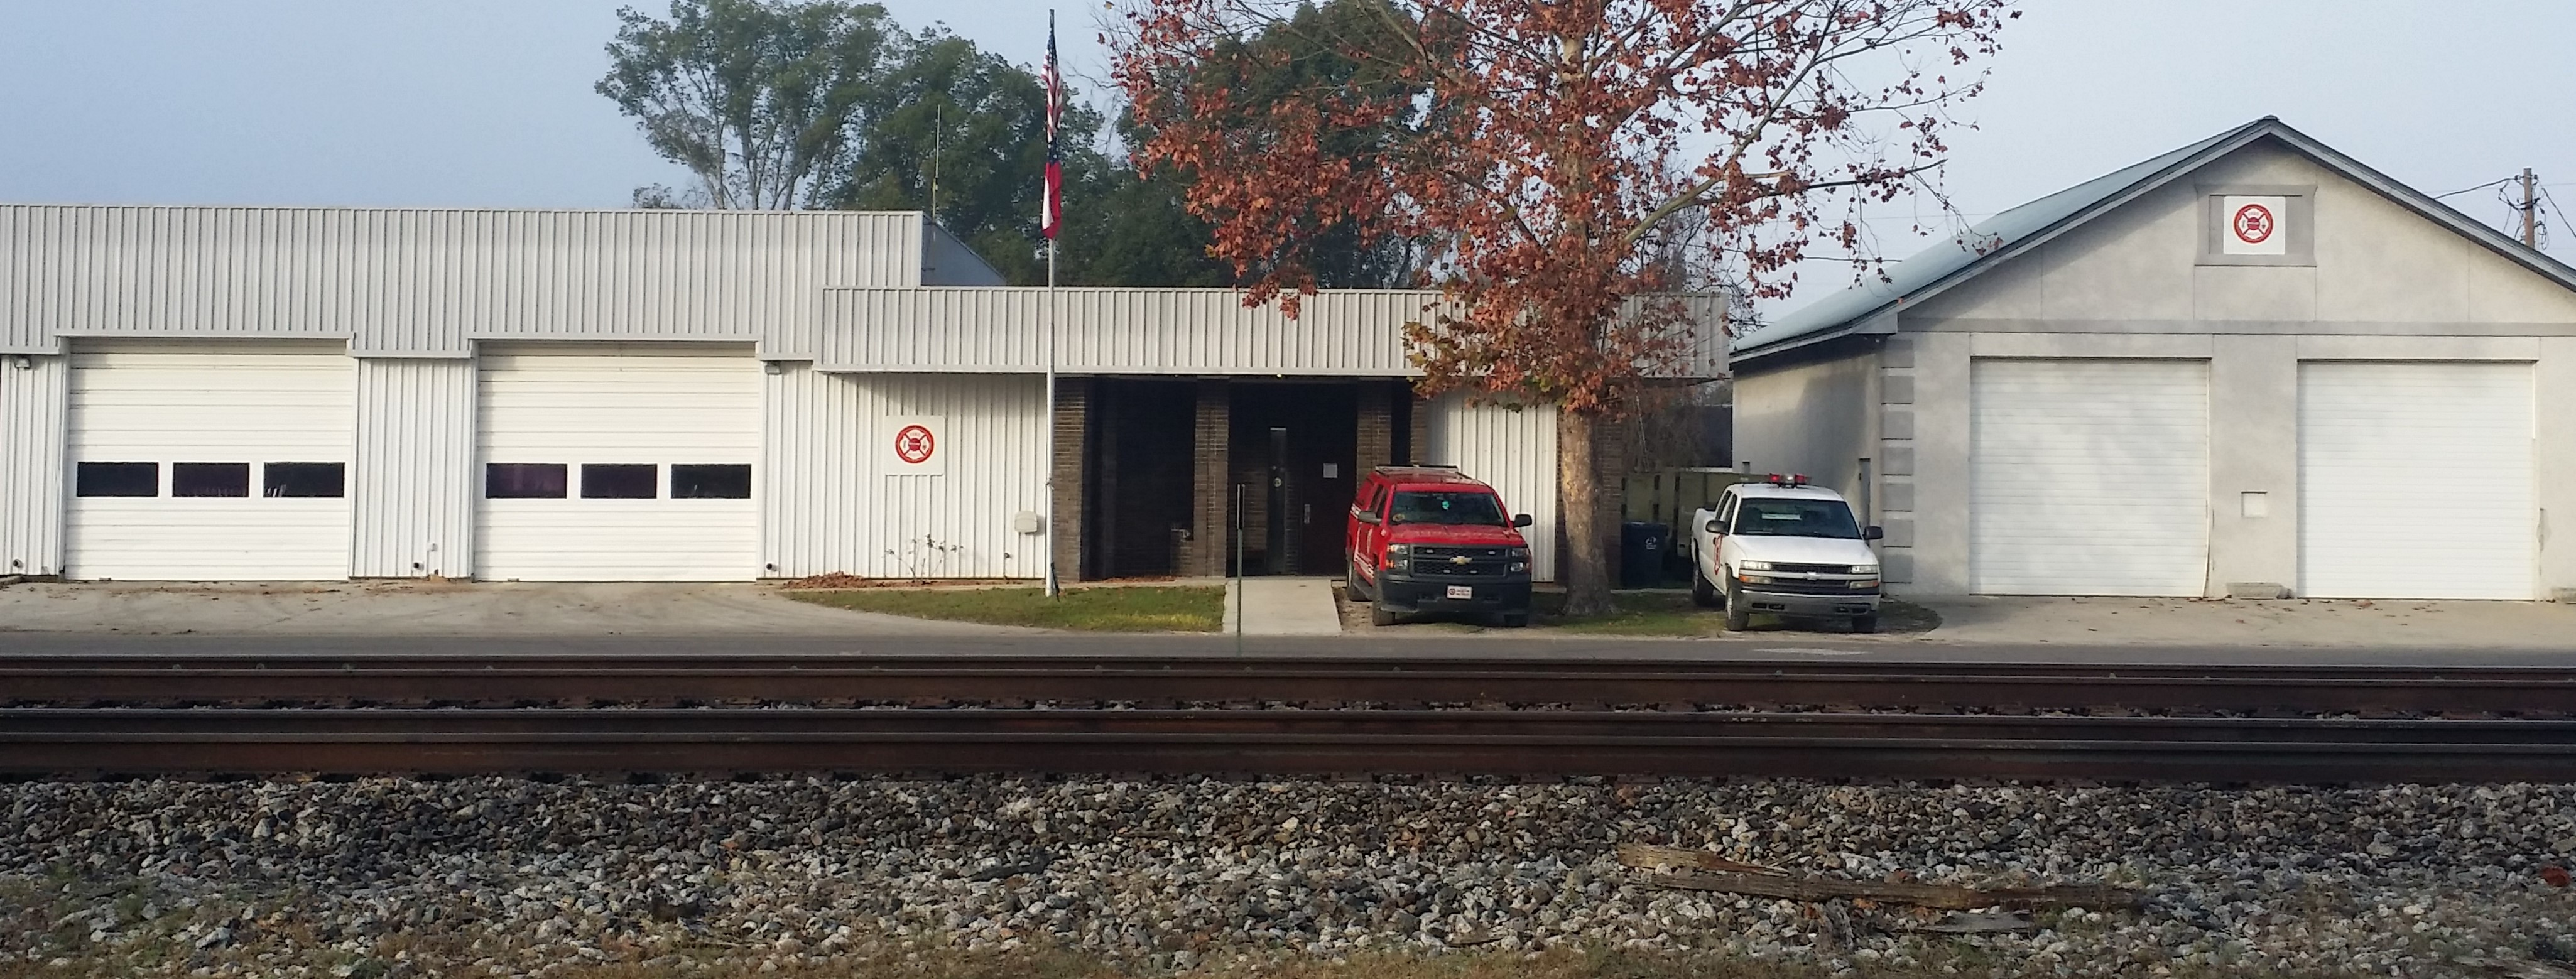 Folkston Fire Station 1